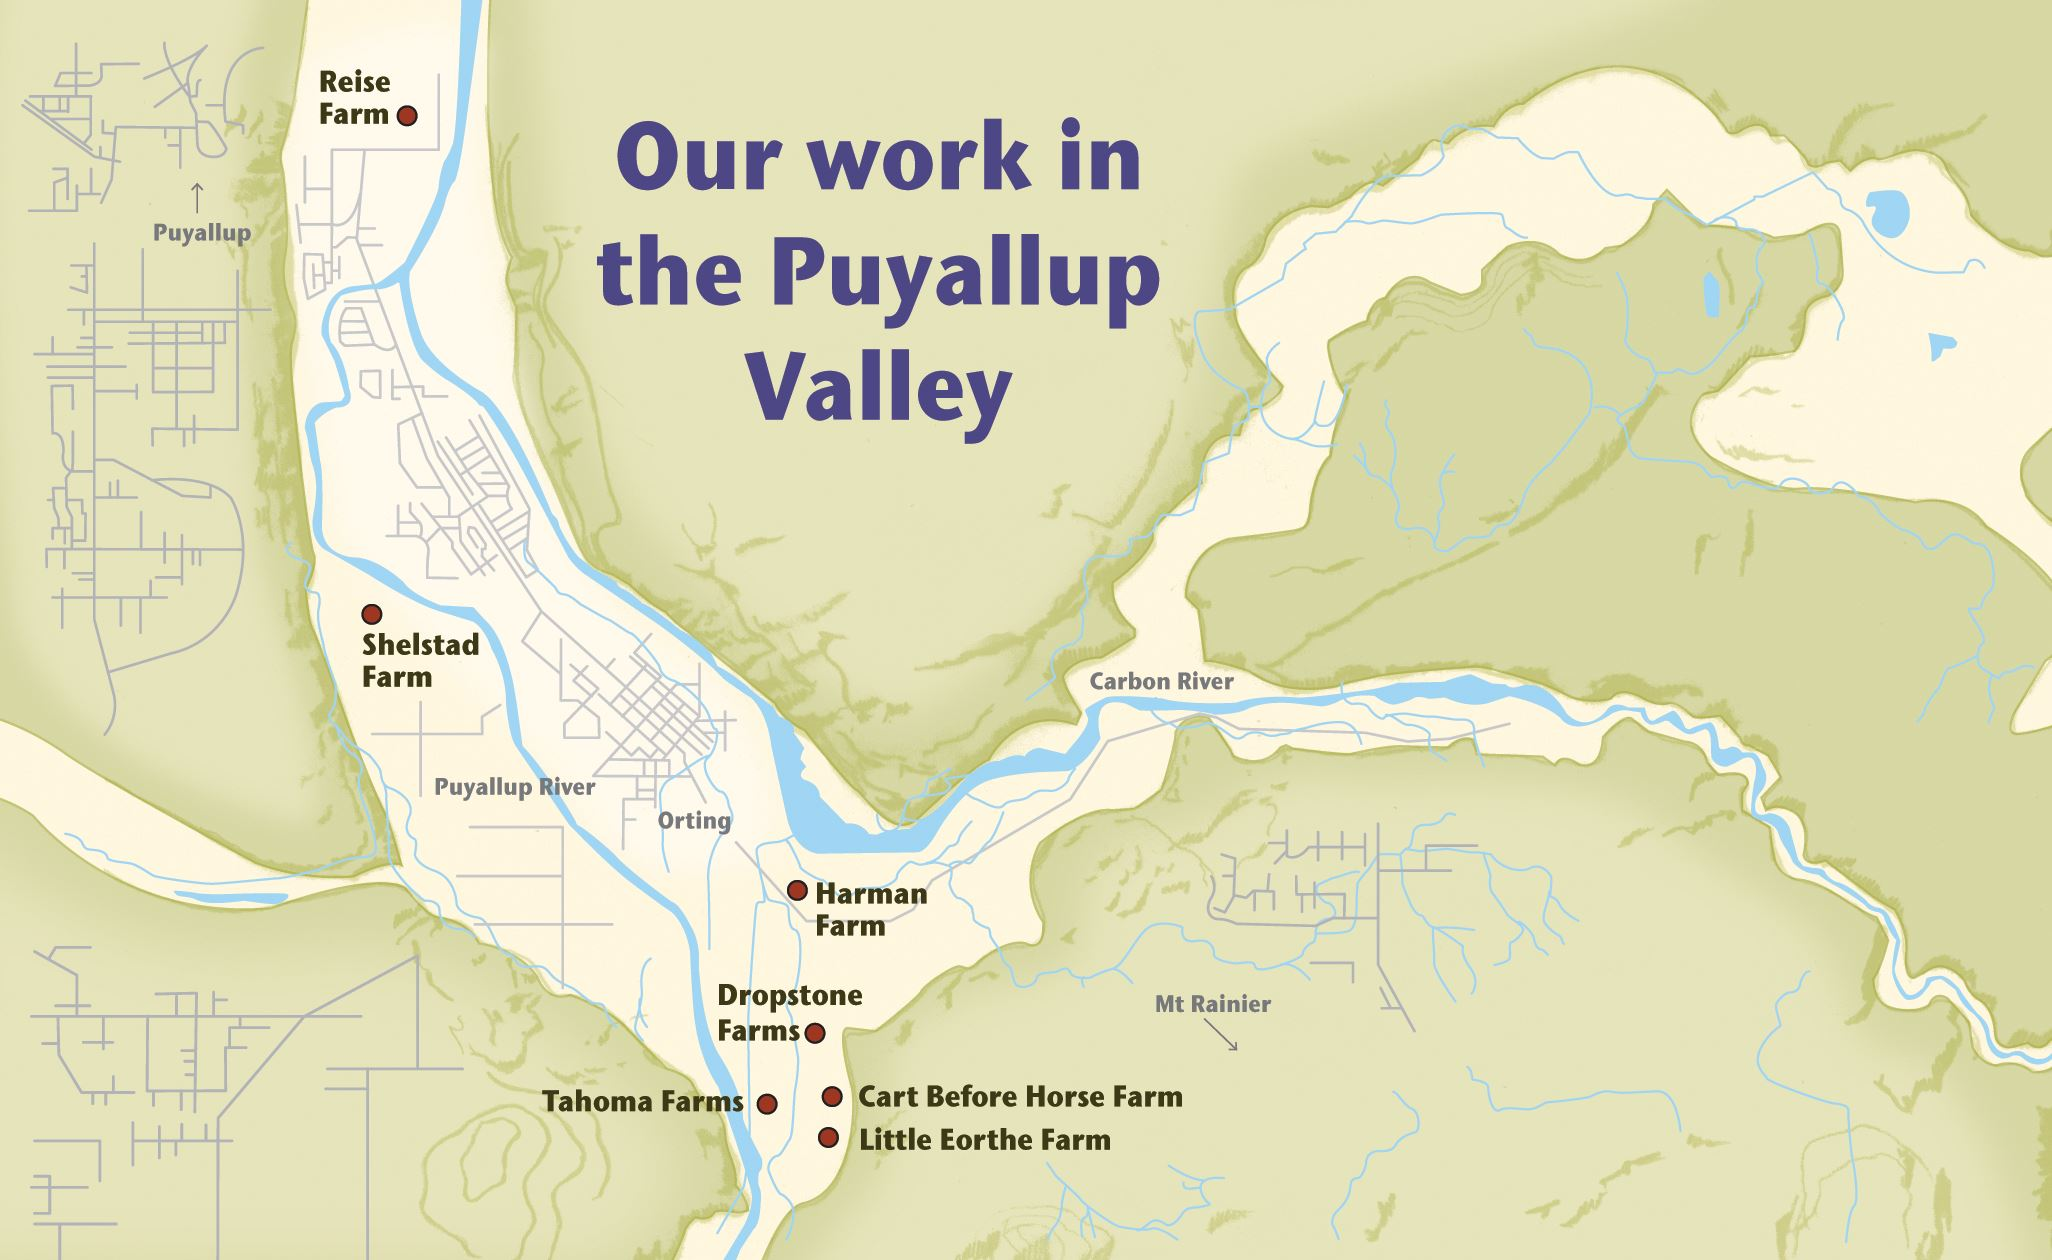 work-in-the-puyallup-valley